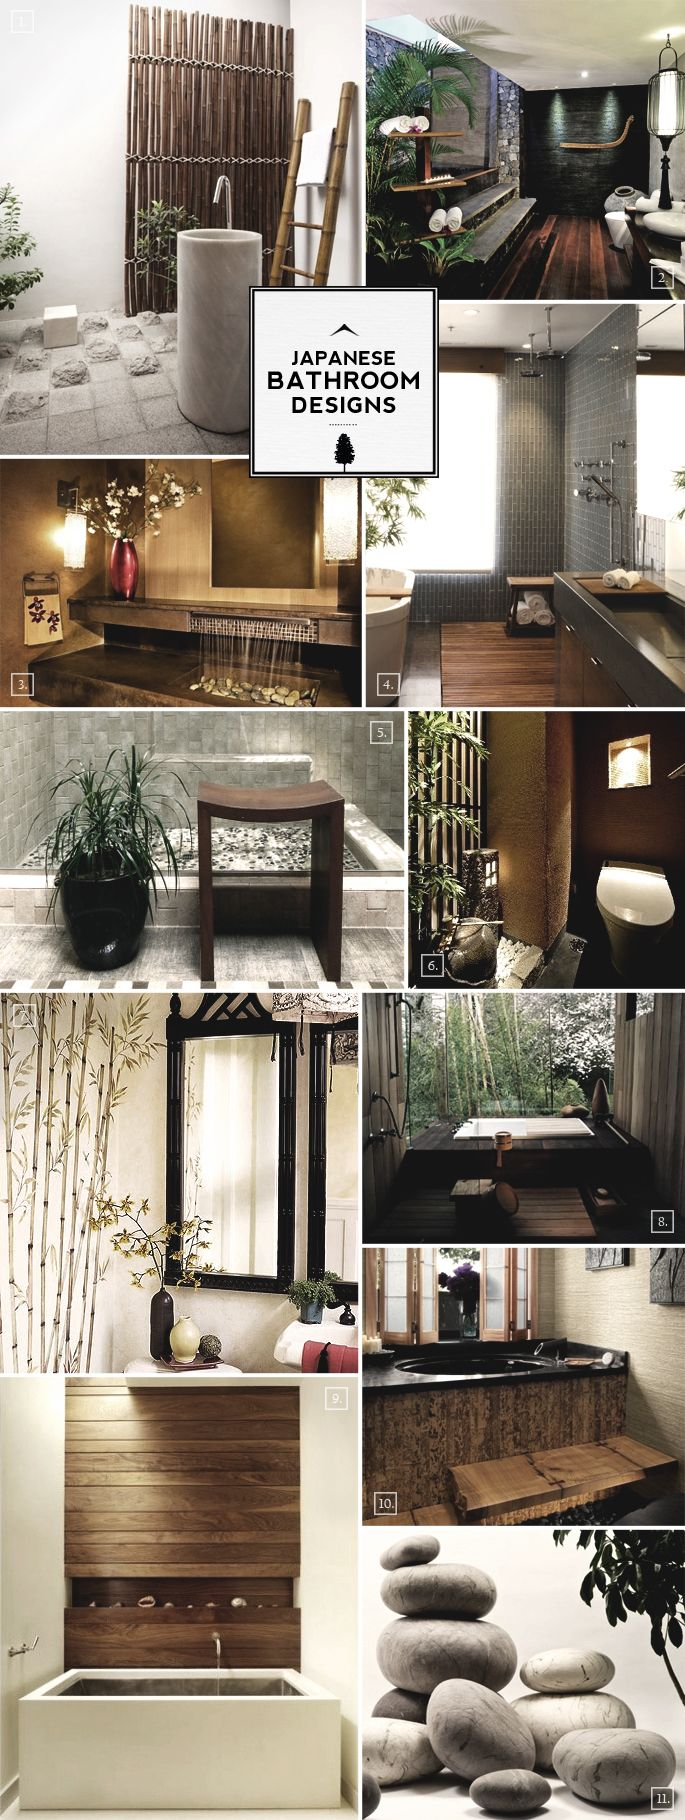 zen style japanese bathroom design ideas